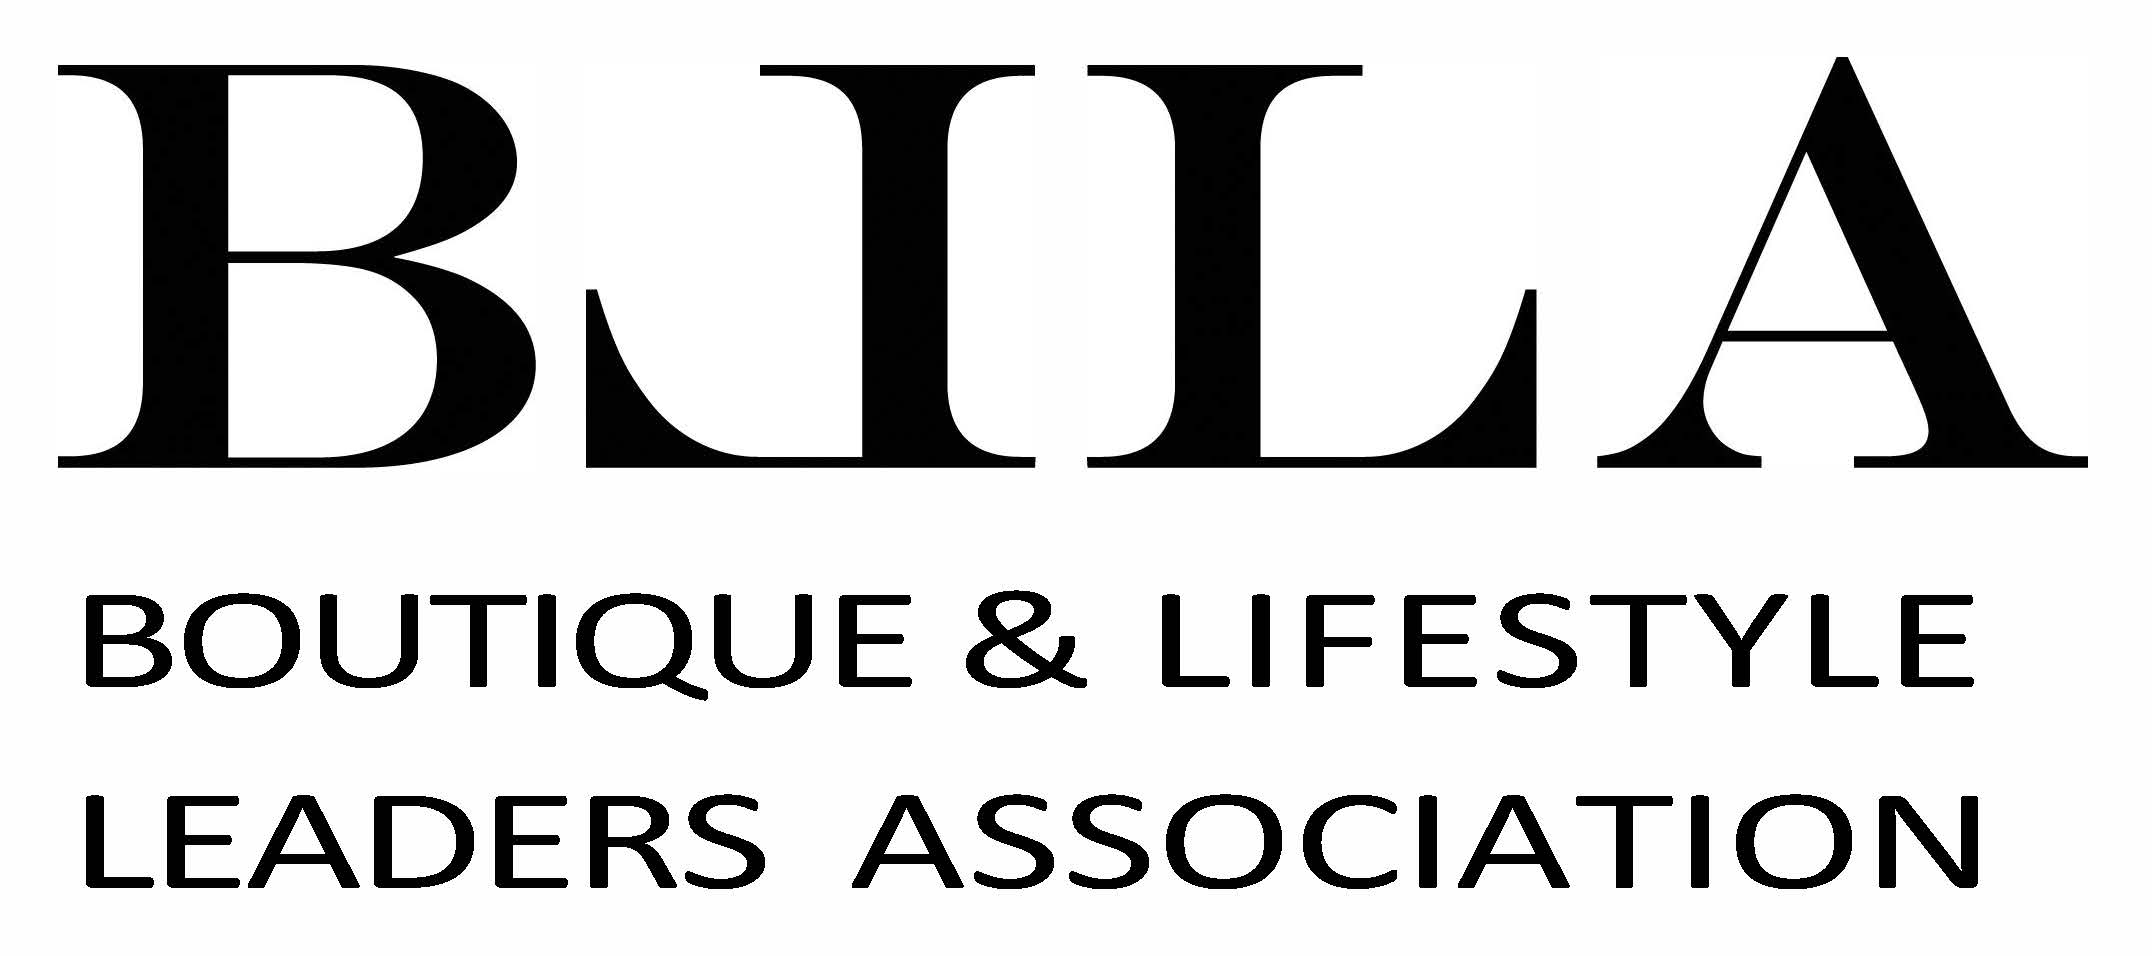 Boutique & Lifestyle Leaders Association (BLLA)